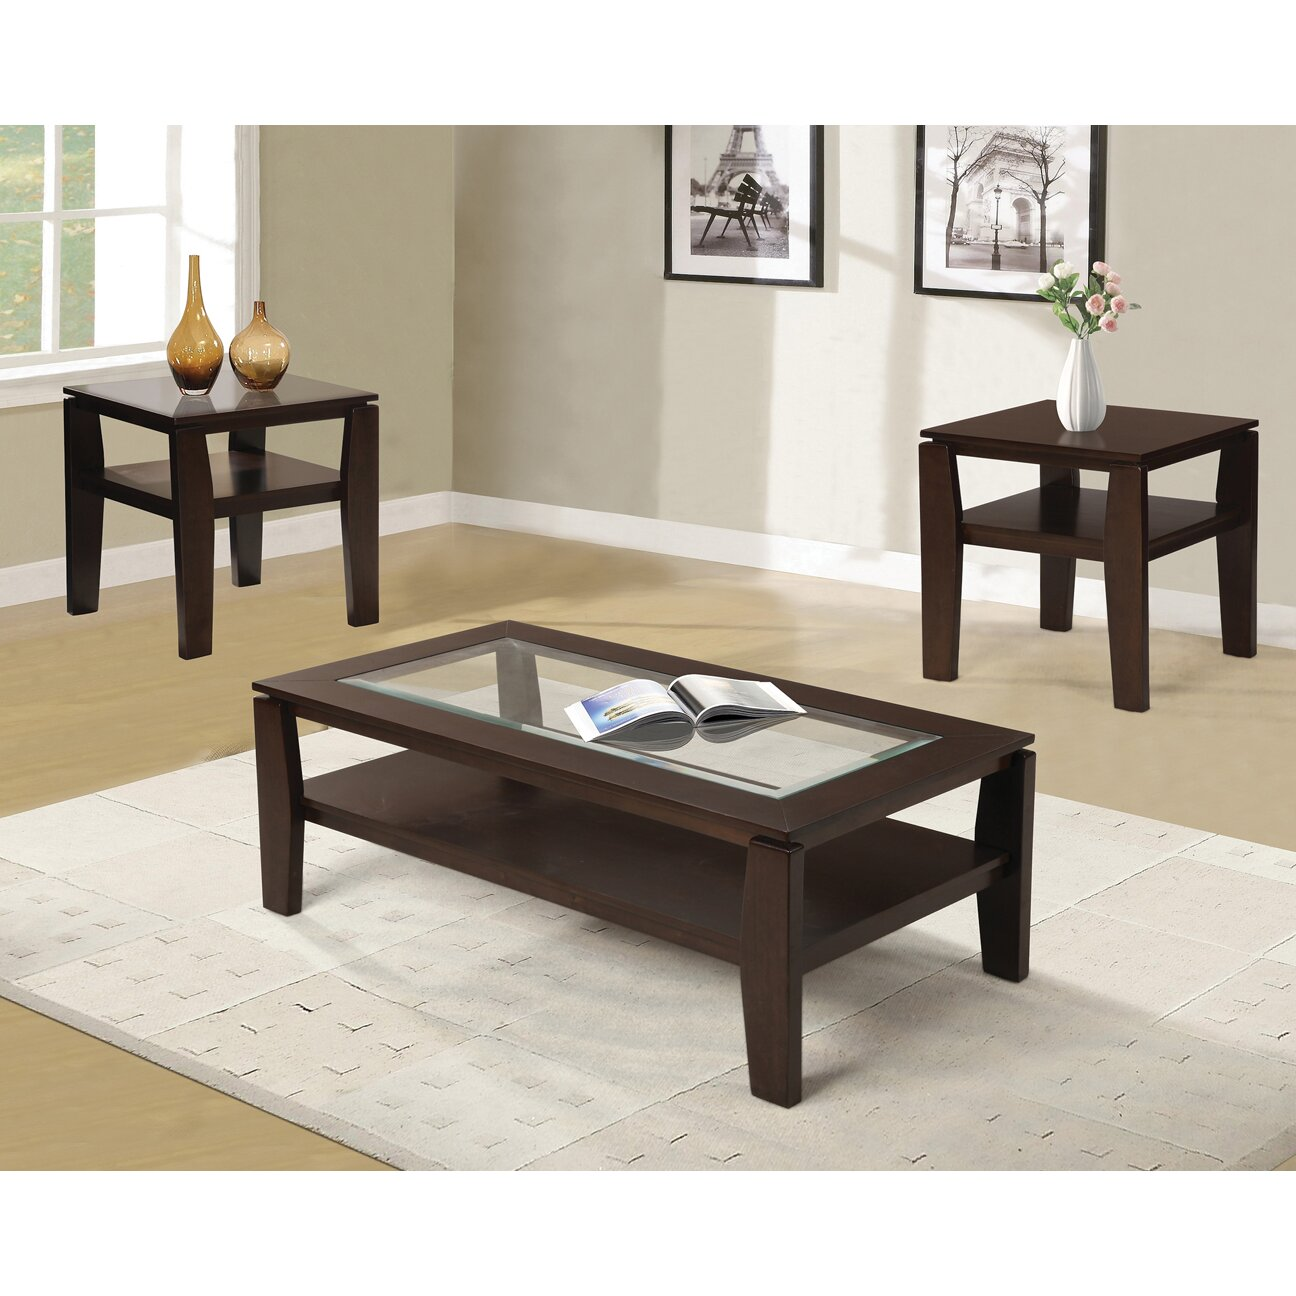 Red Barrel Studio Golder 3 Piece Coffee Table SetReviewsWayfair